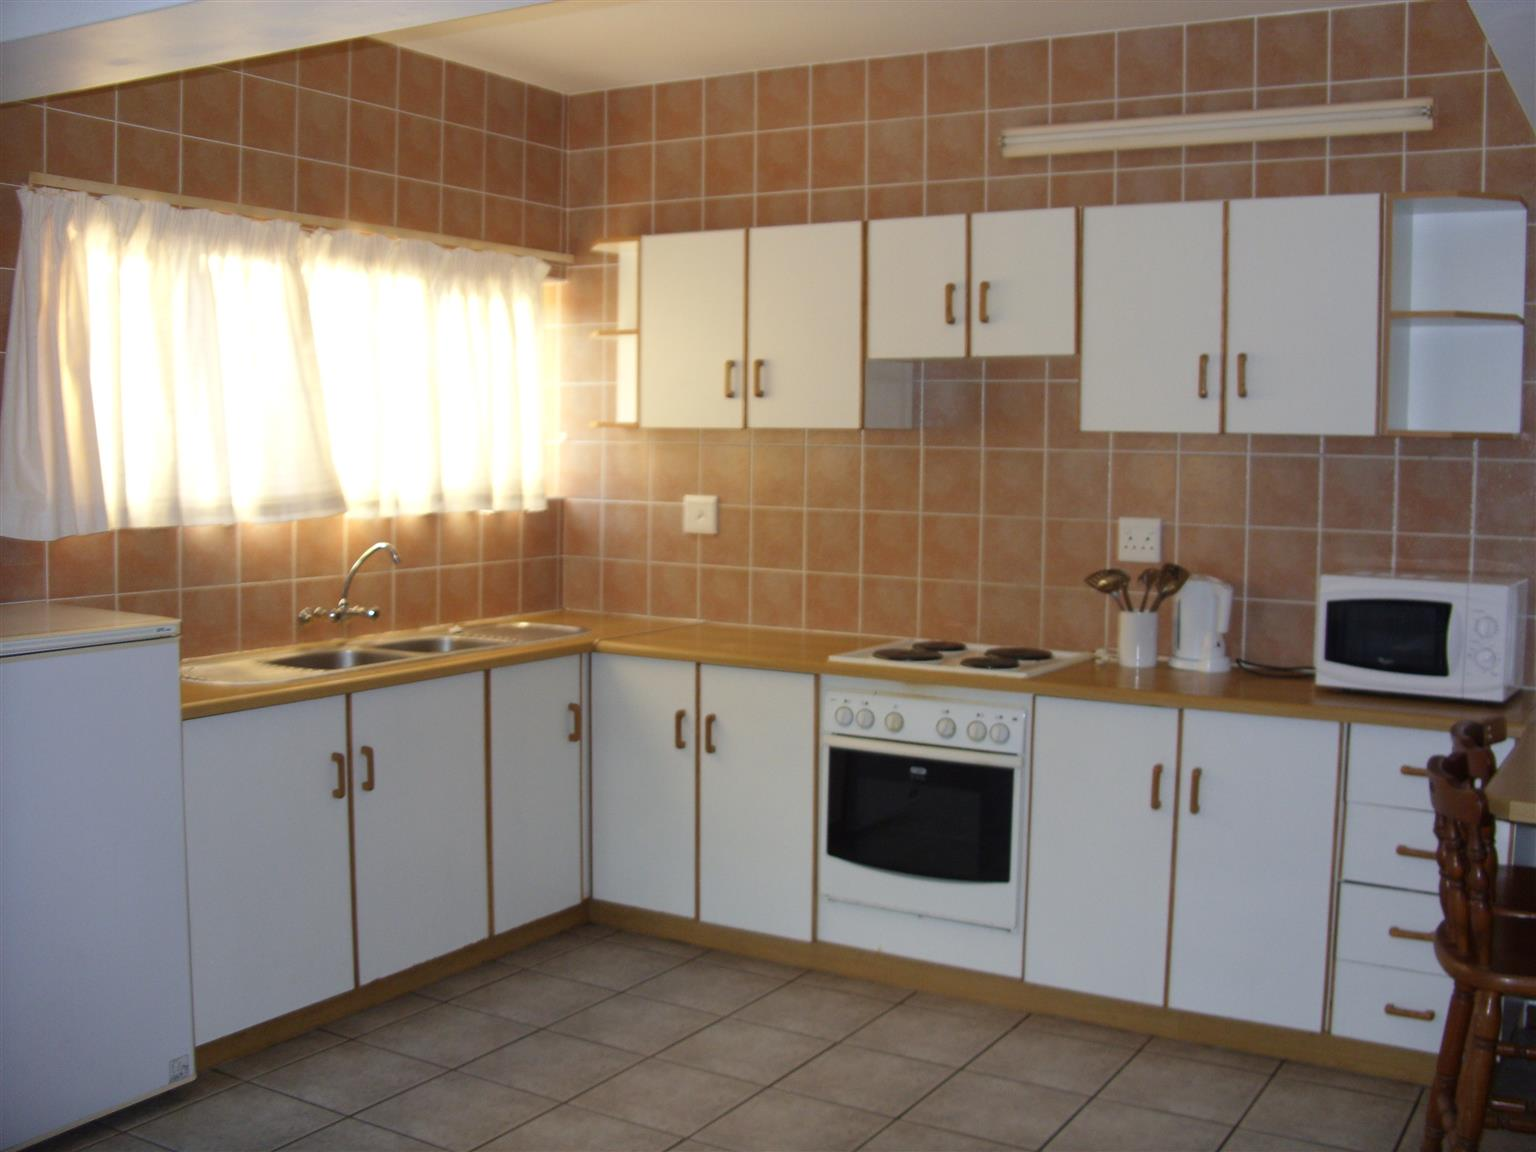 HOLIDAY FLATS 4 SLEEPER SELF-CATERING FROM R125 PPPN FOR 4 GUESTS ST MICHAELS-ON-SEA SHELLY BEACH